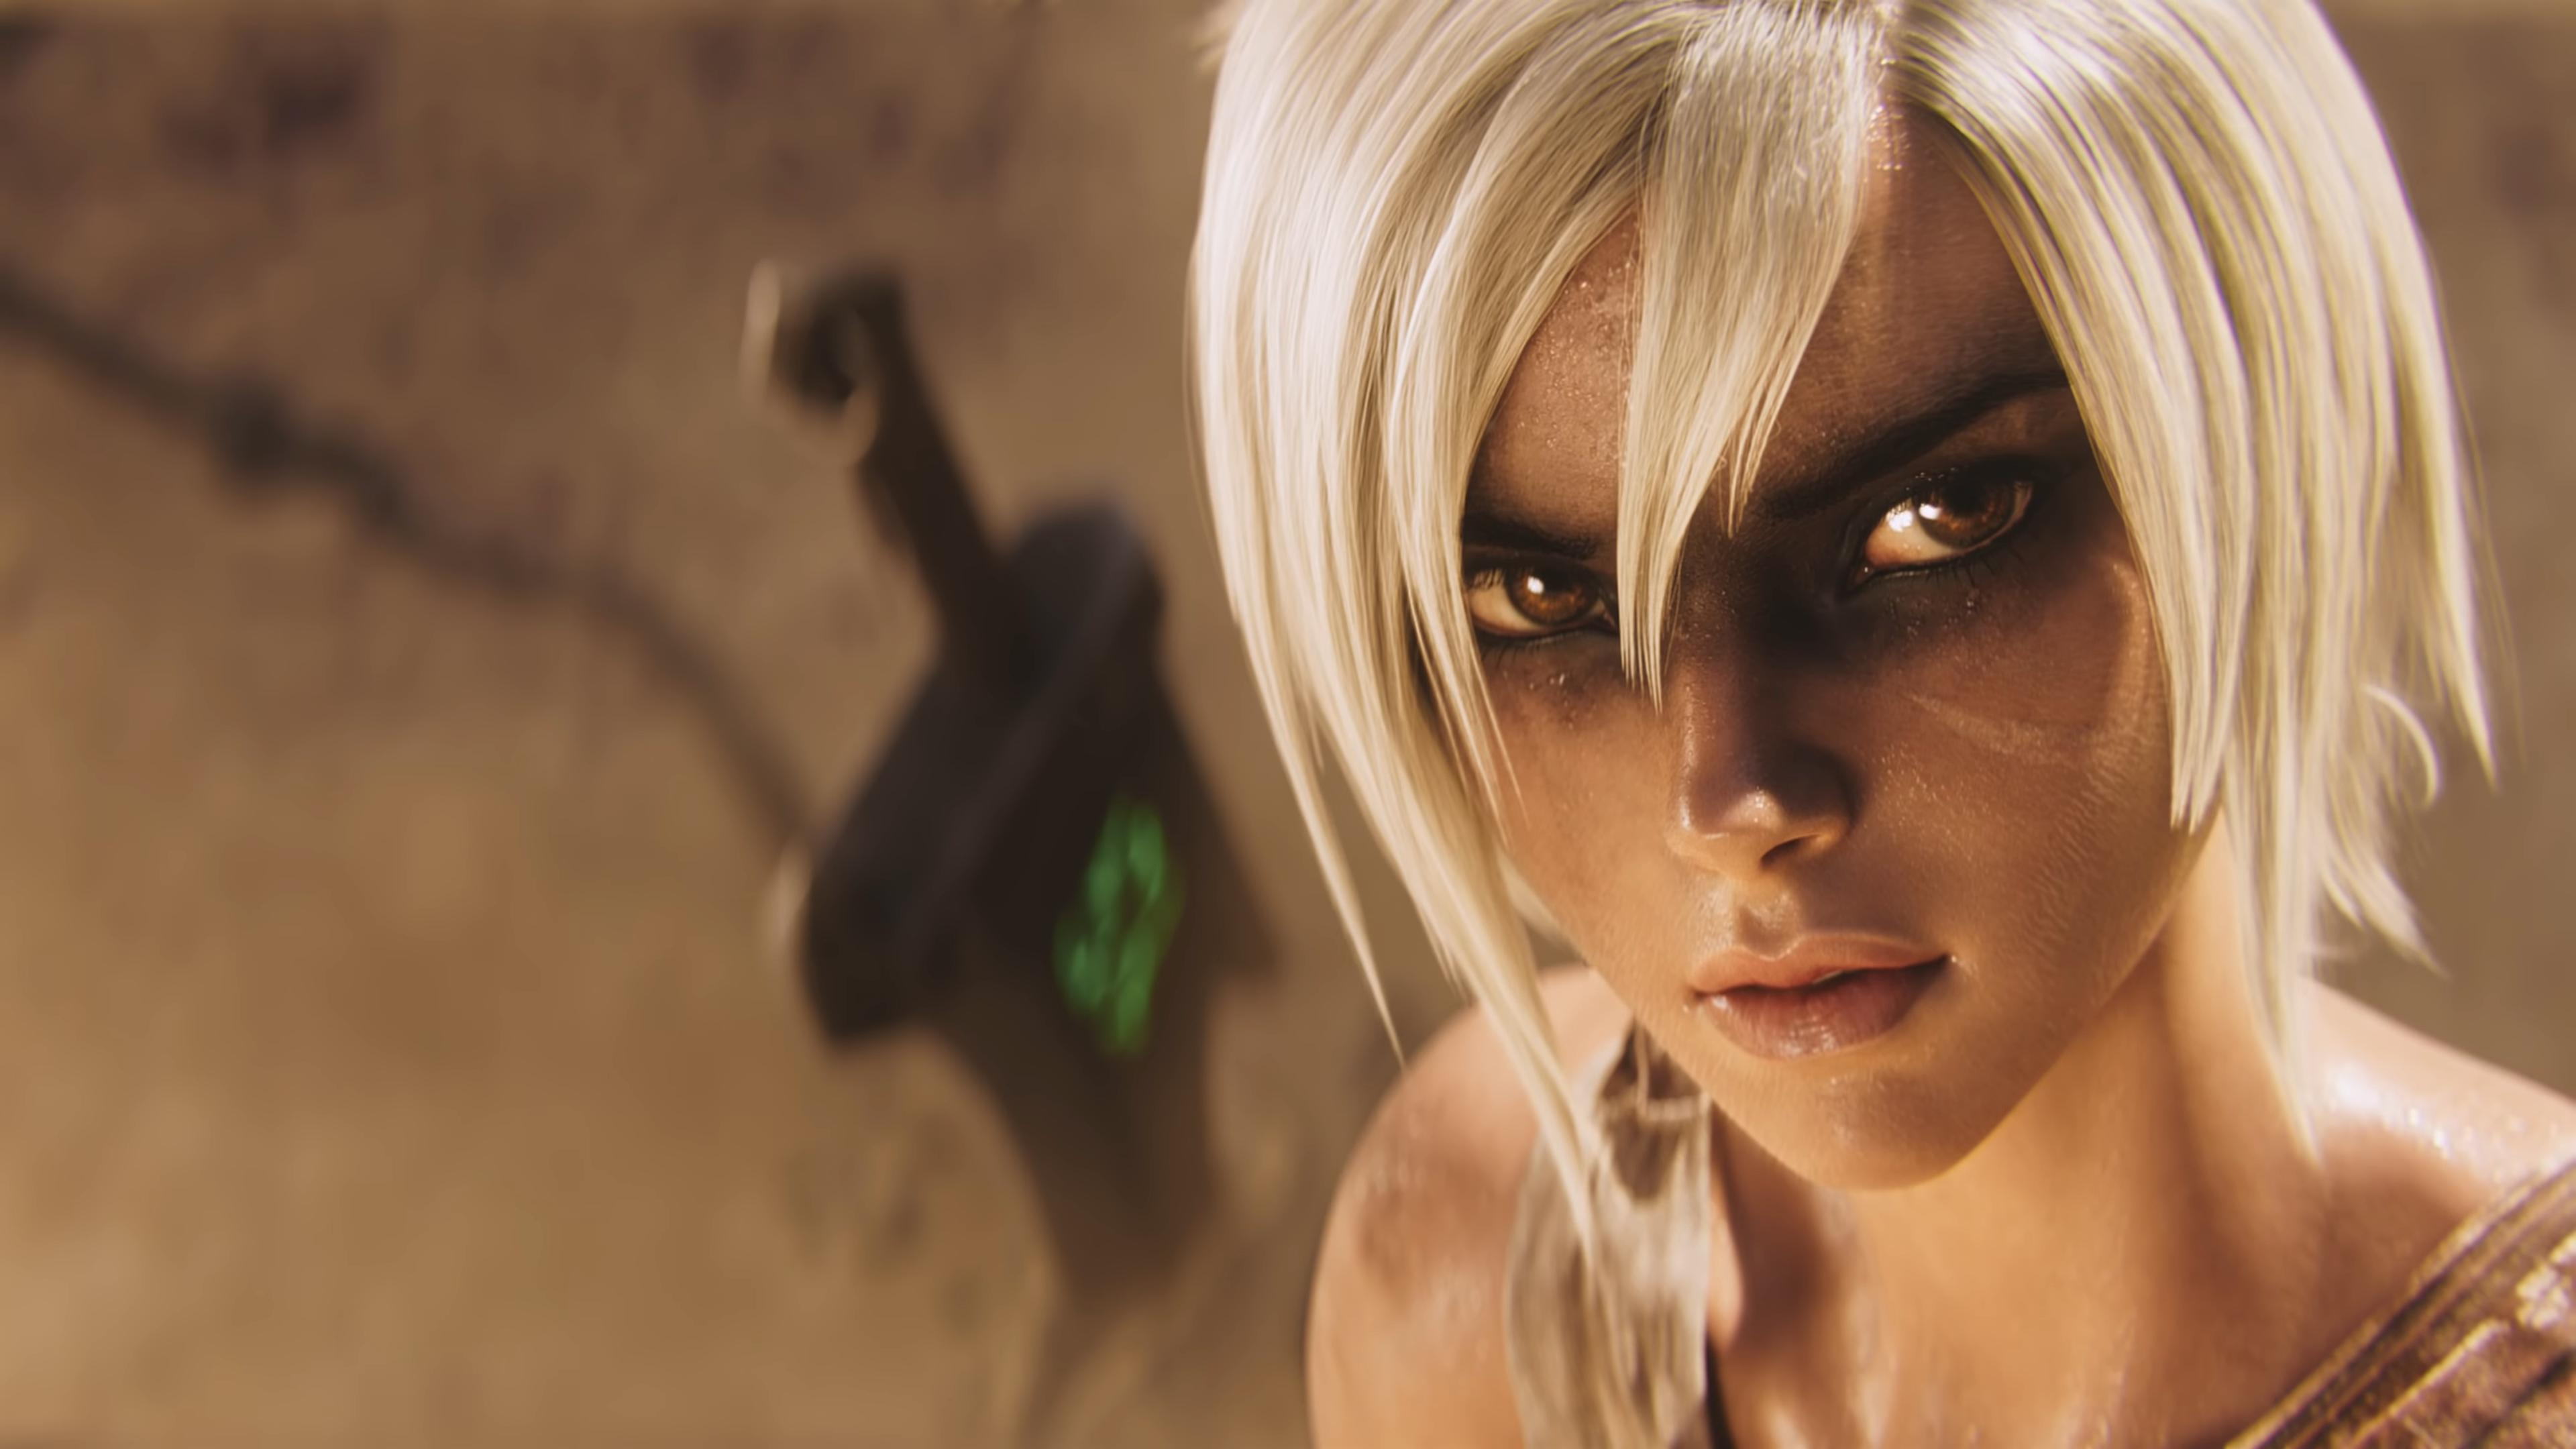 Riven Awaken Cinematic Ft Valerie Broussard Wallpapers Artist Riot Games League Of Legends Waifu Clan Anime Pics Digital Art